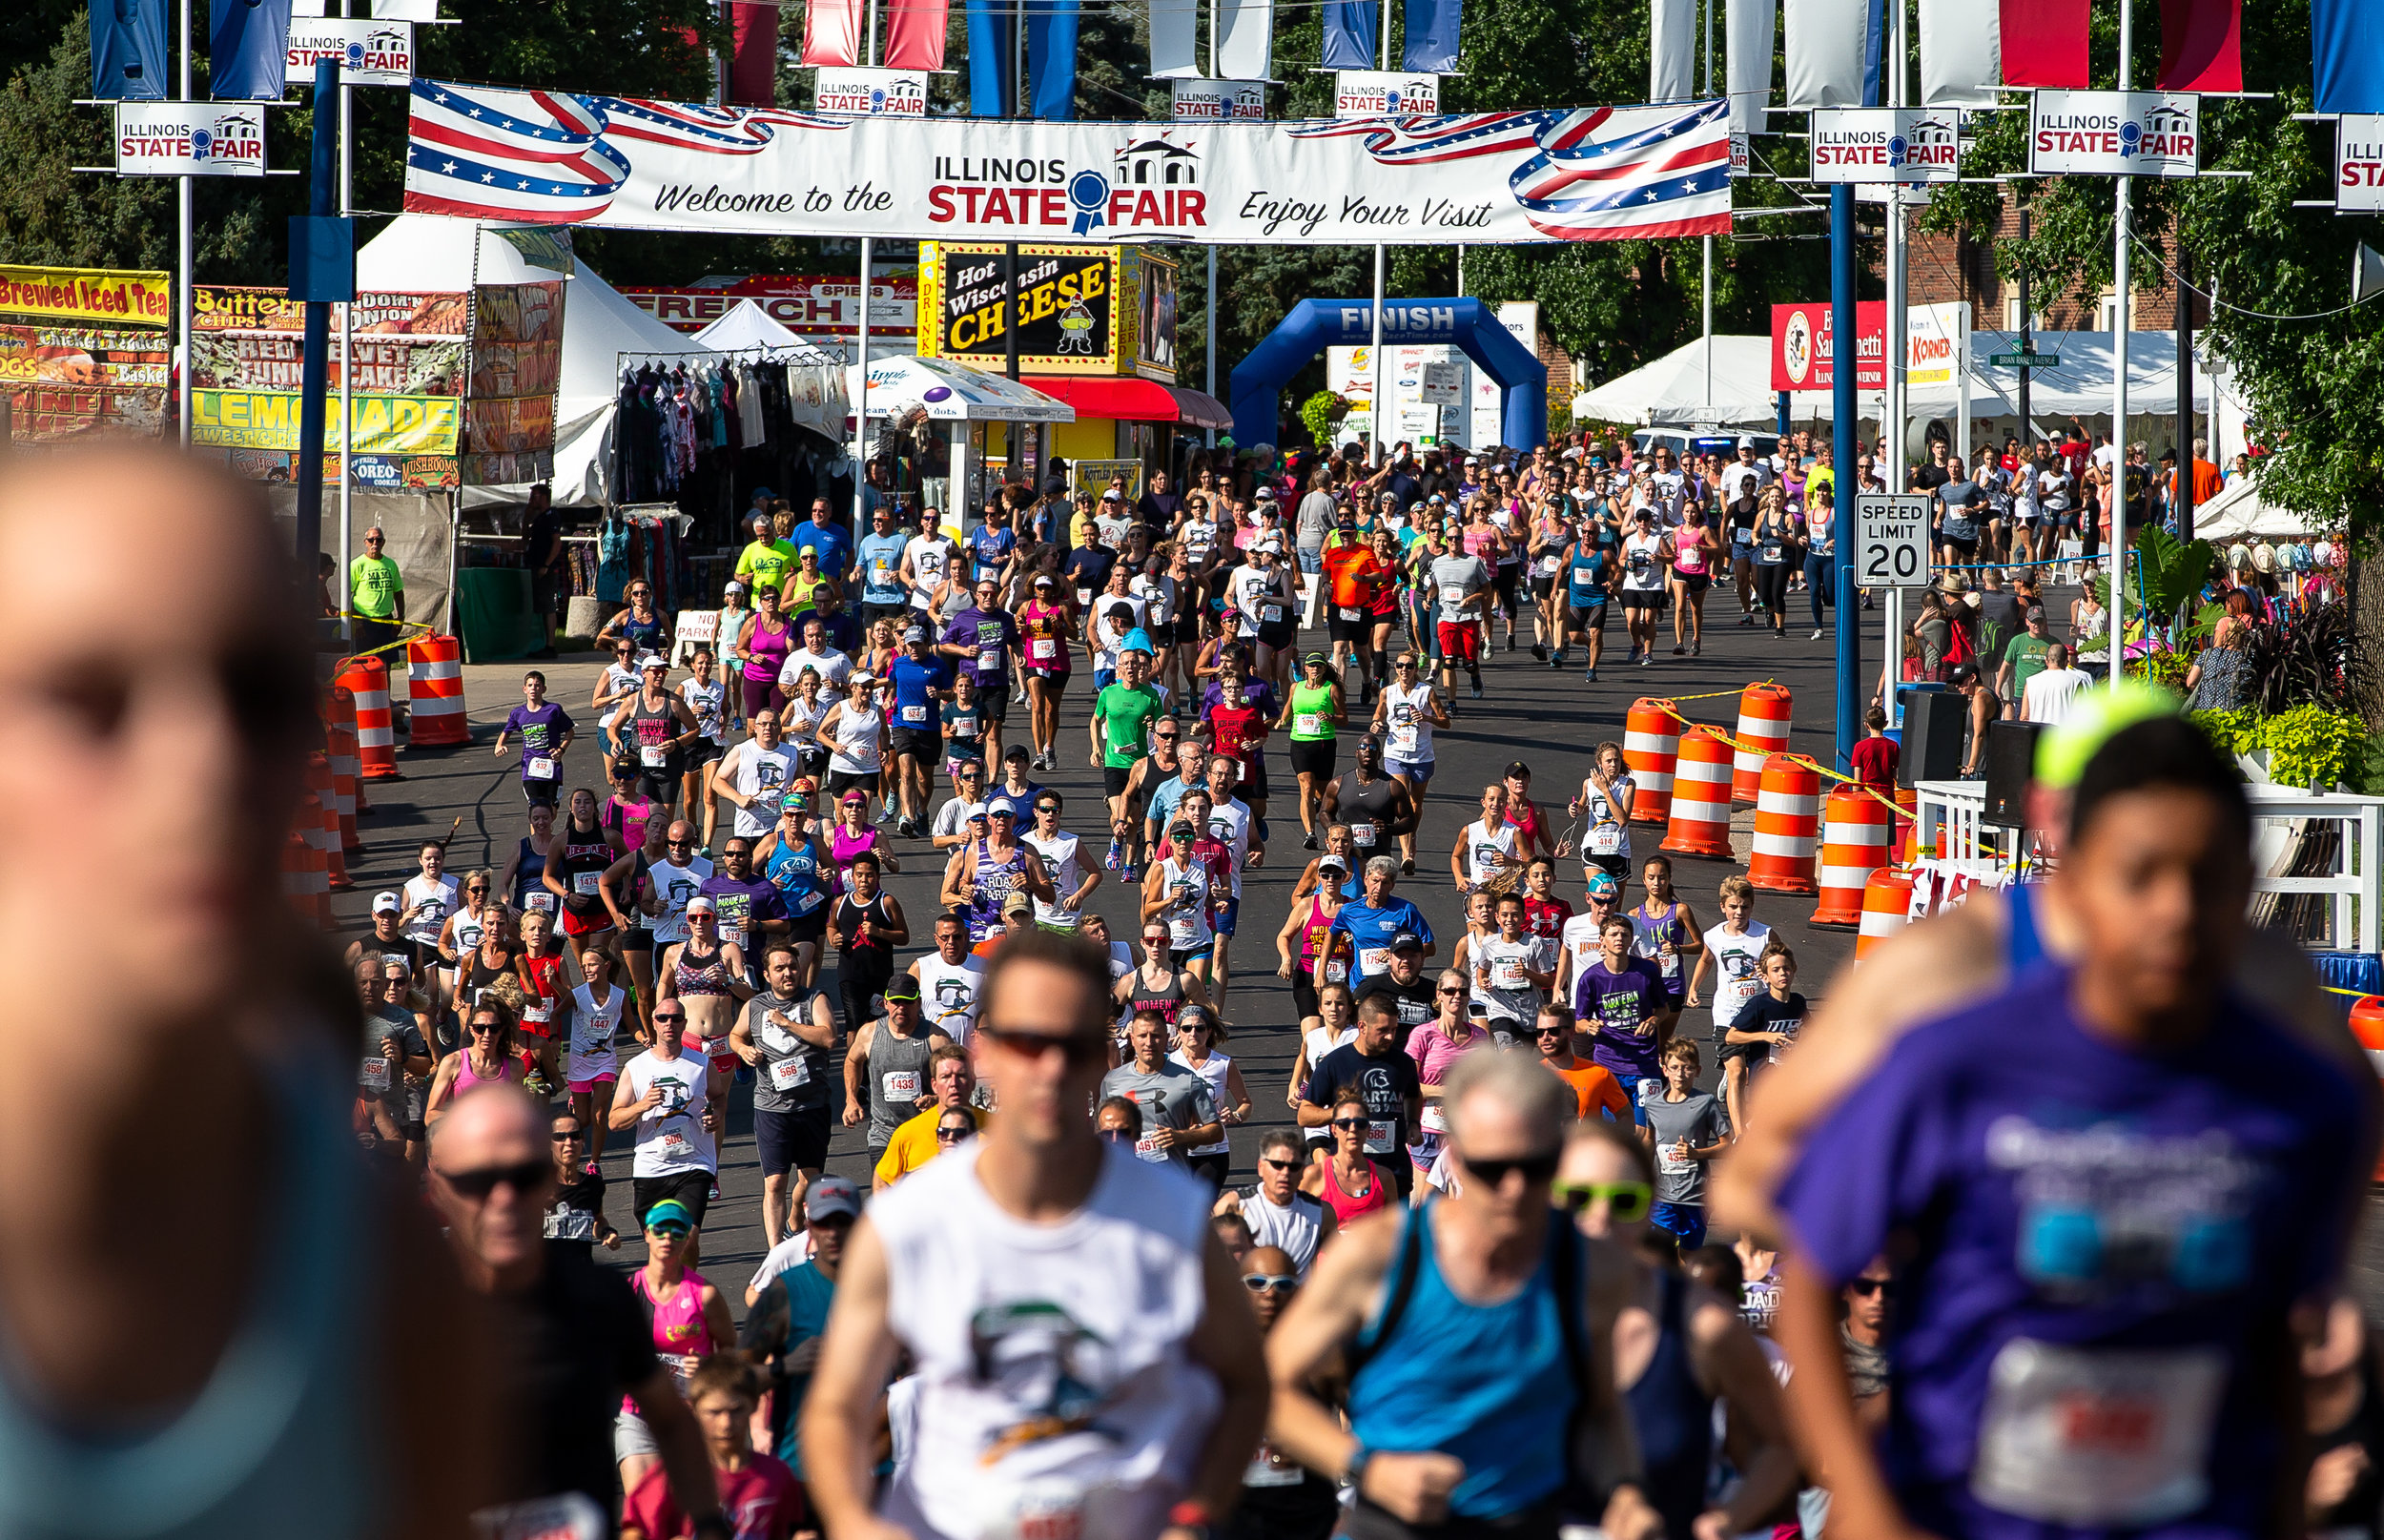 Runners fill Main Street as they set out for the Illinois State Fair Parade Run prior to the Illinois State Fair Twilight Parade, Thursday, Aug. 9, 2018, in Springfield, Ill. [Justin L. Fowler/The State Journal-Register]